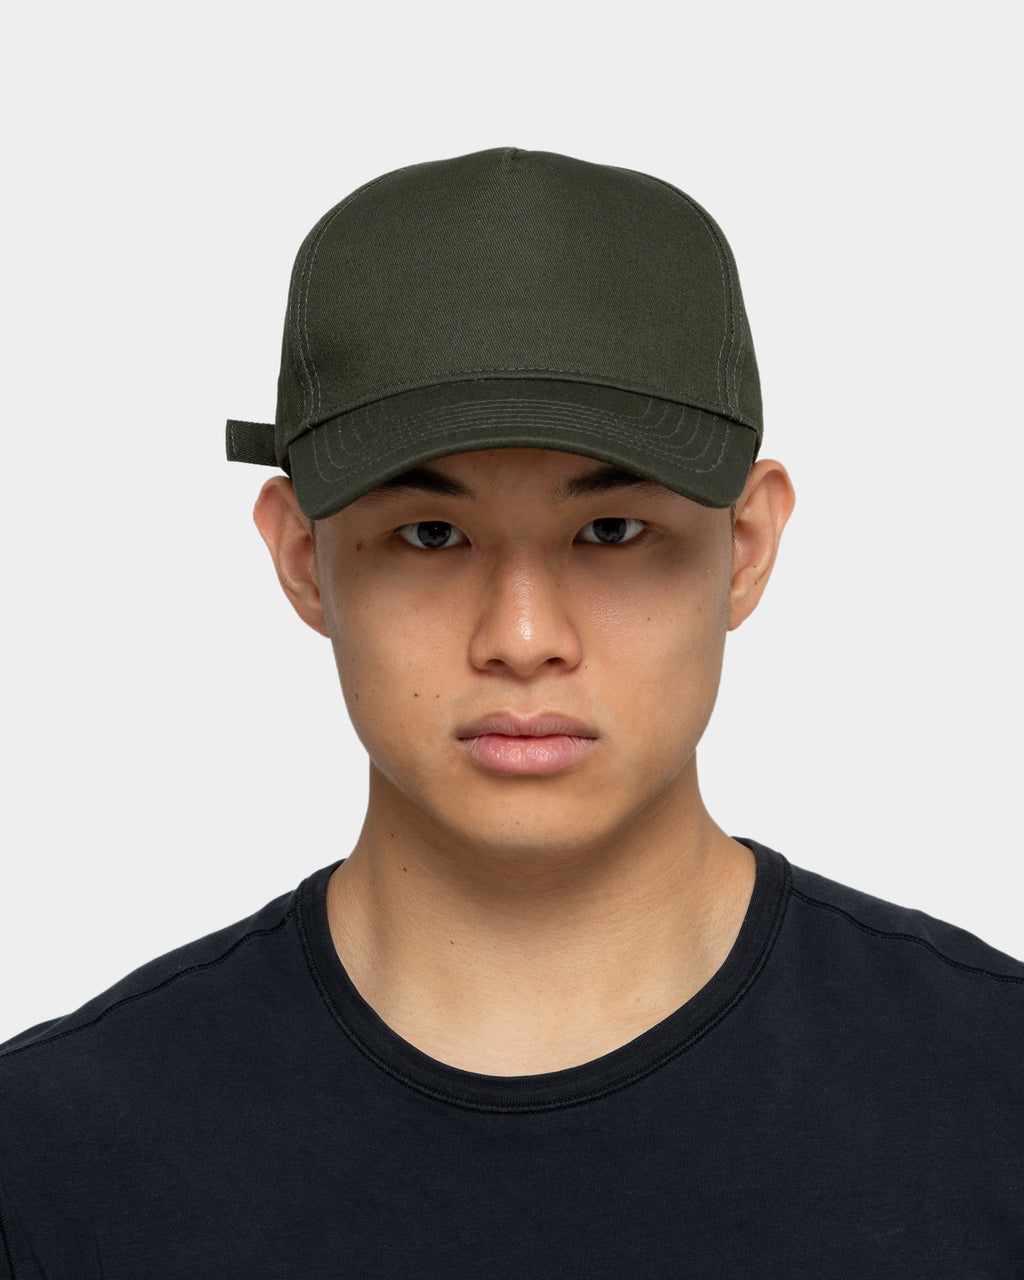 Carré Men's Script Iron Lady Strapback Army Green